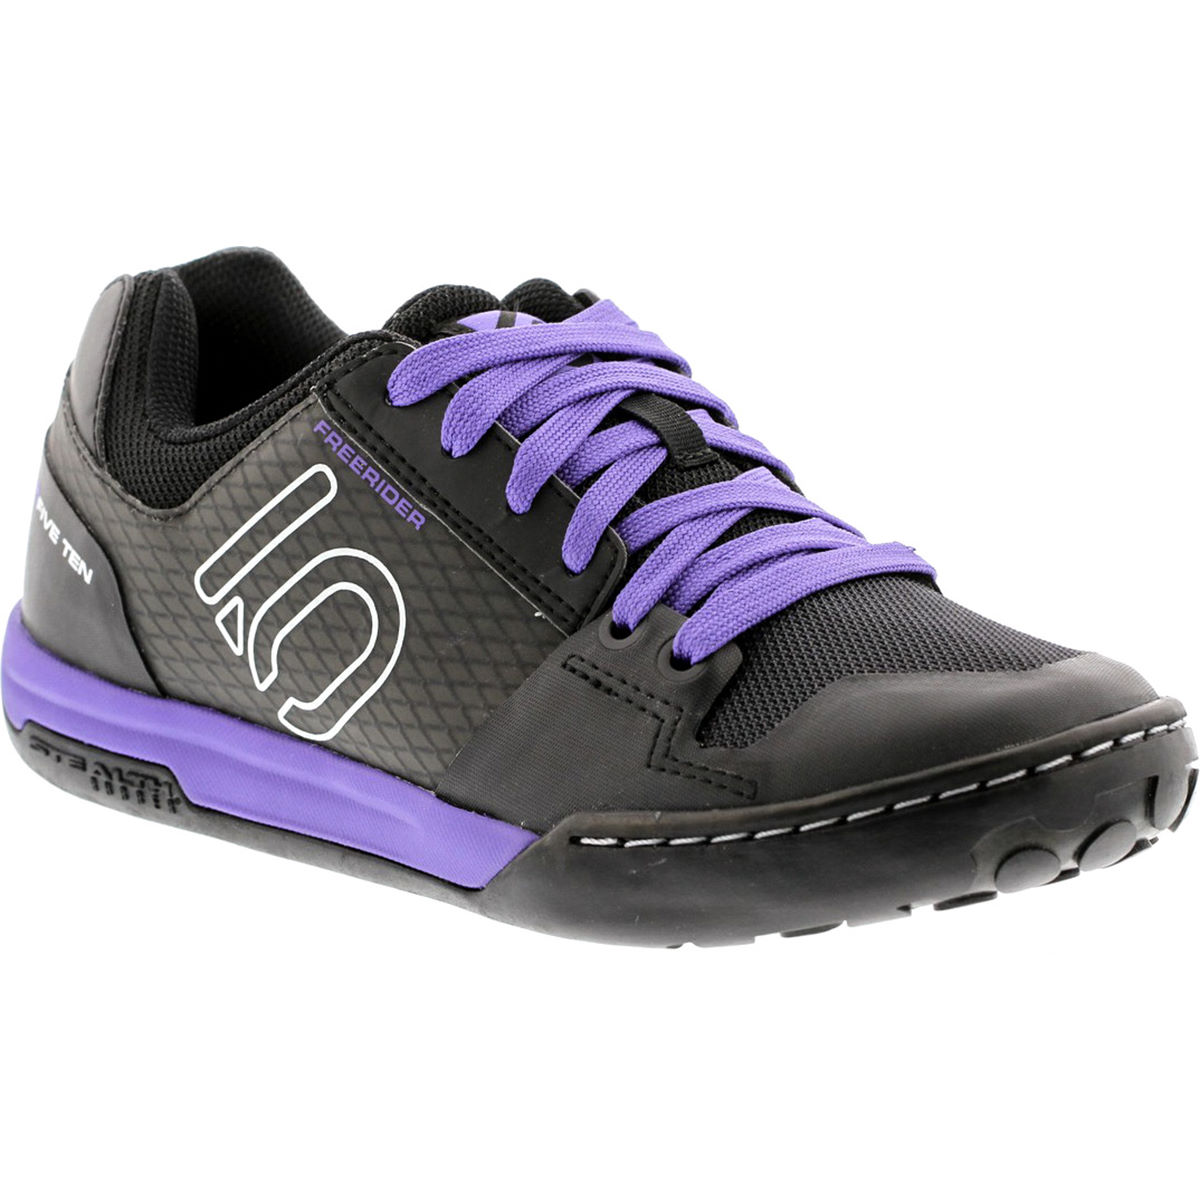 Chaussures VTT Femme Five Ten Freerider Contact - EU 37.5